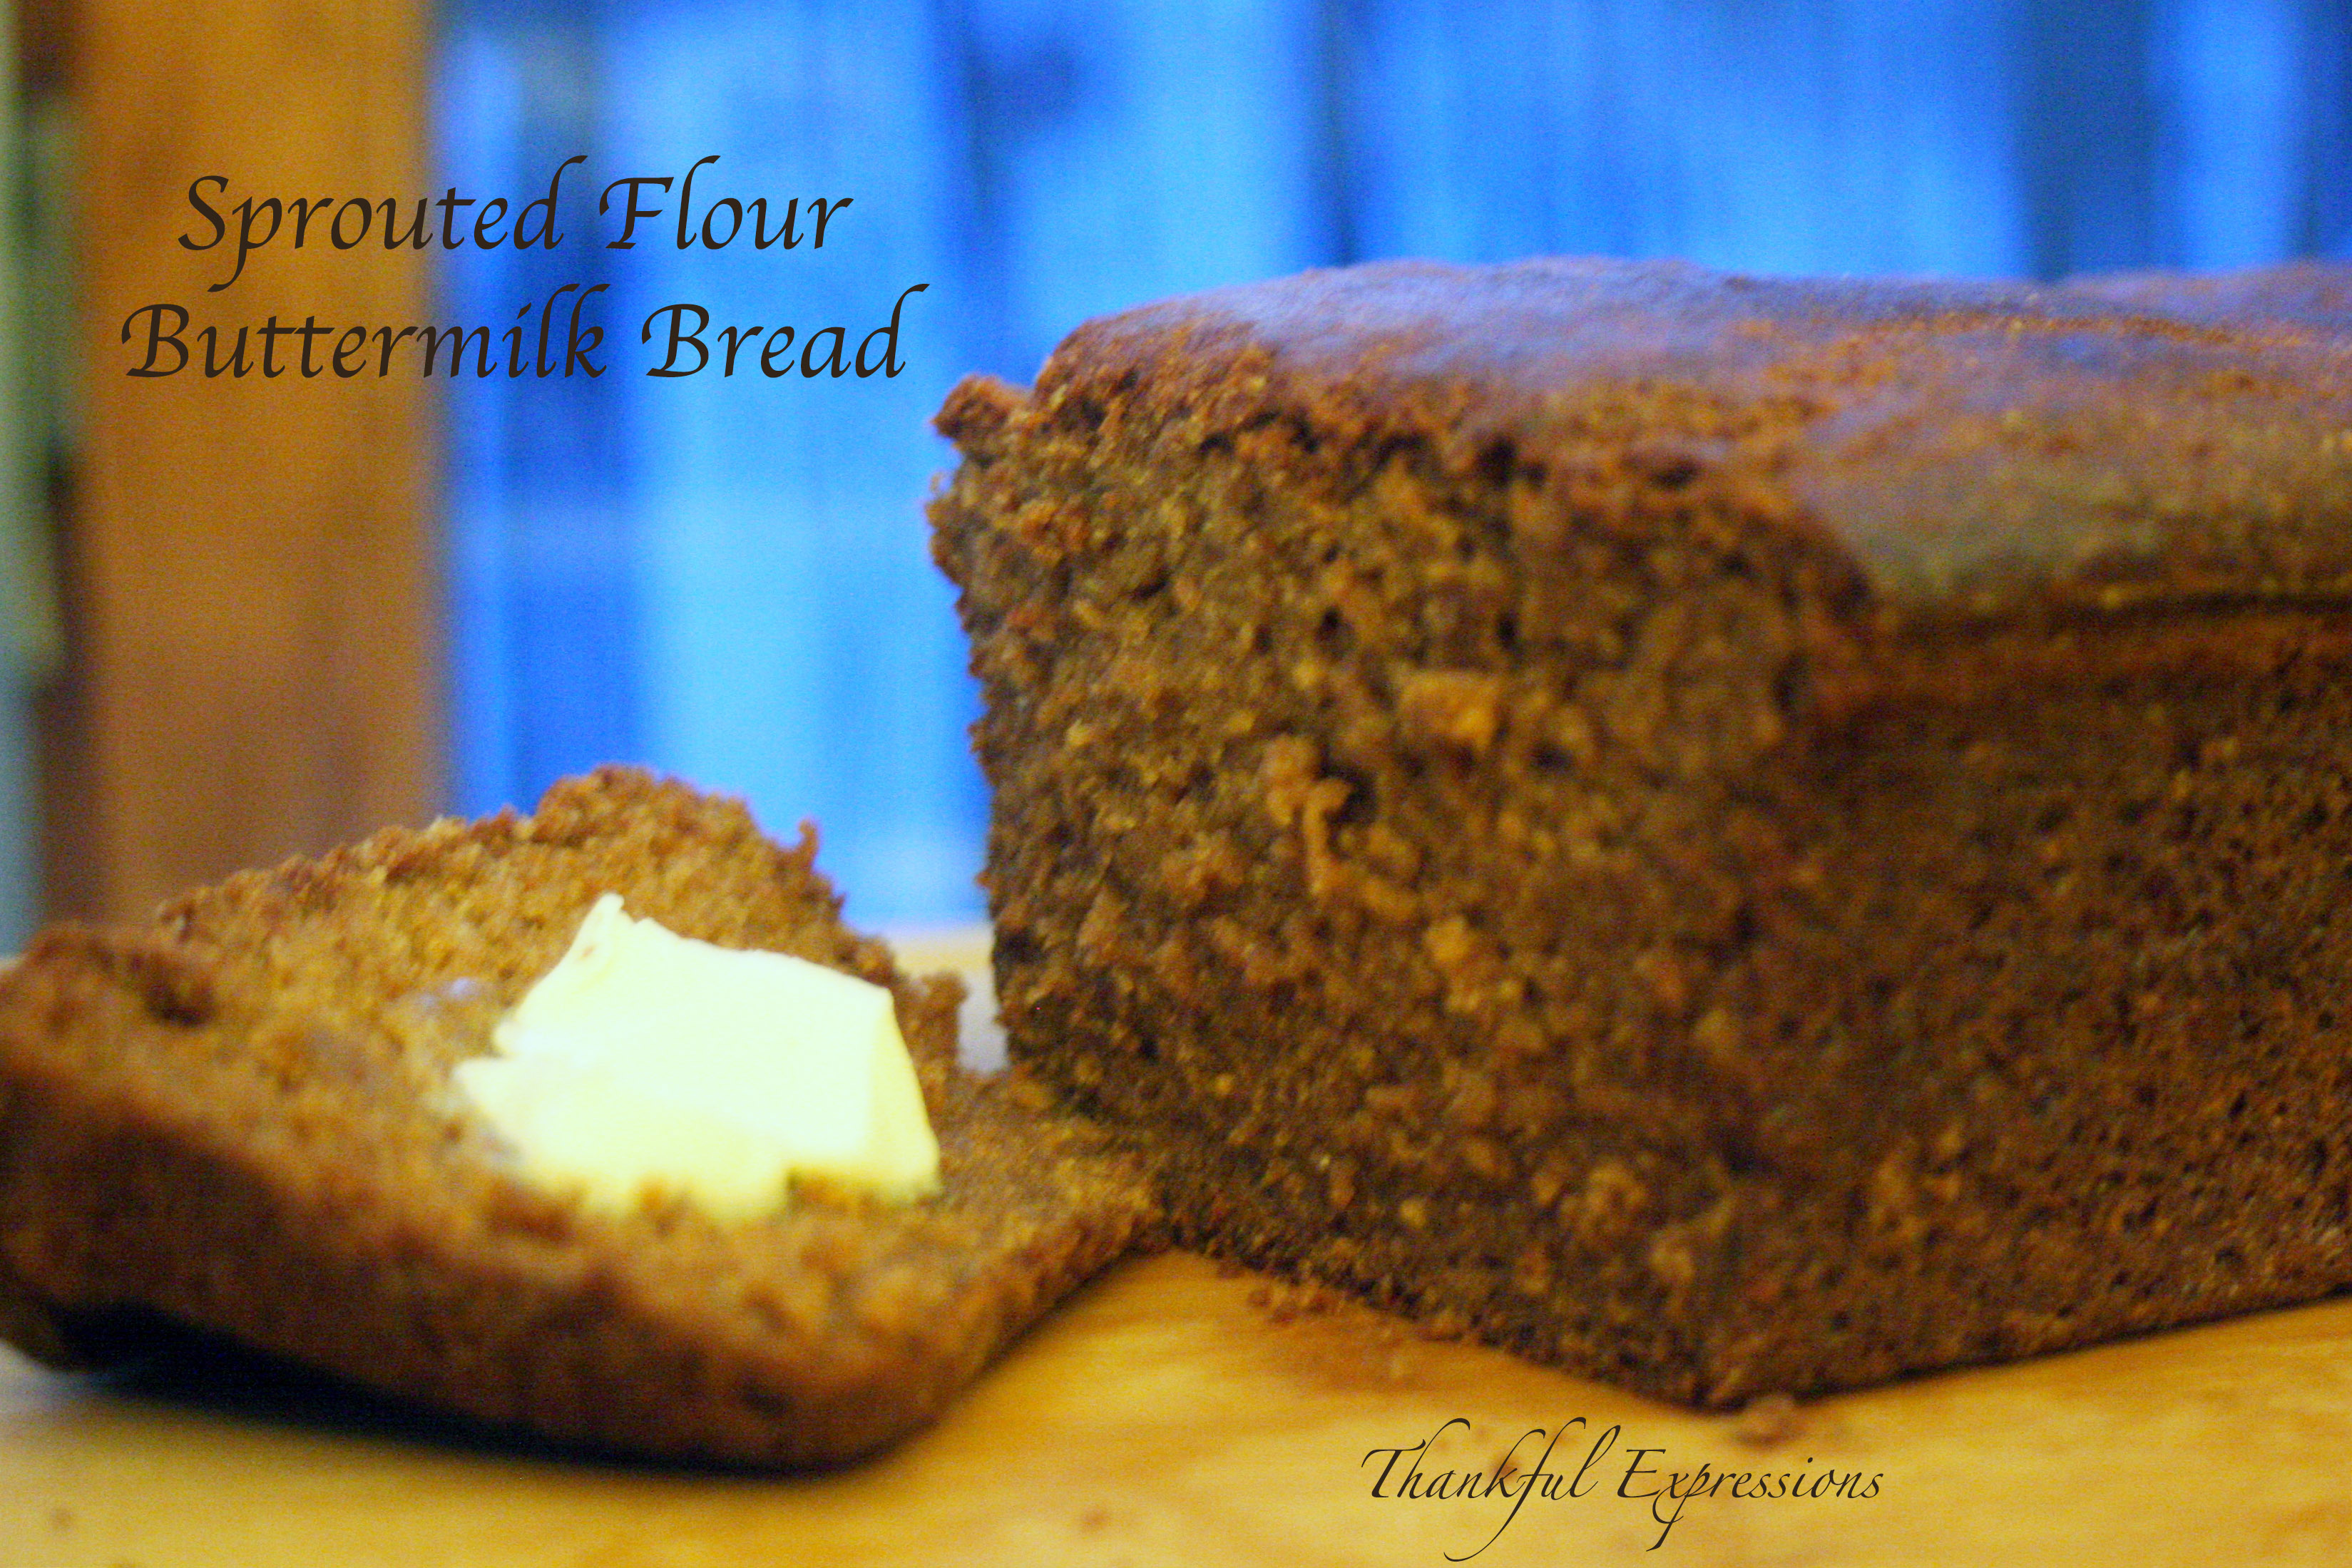 Sprouted Flour, Buttermilk Bread